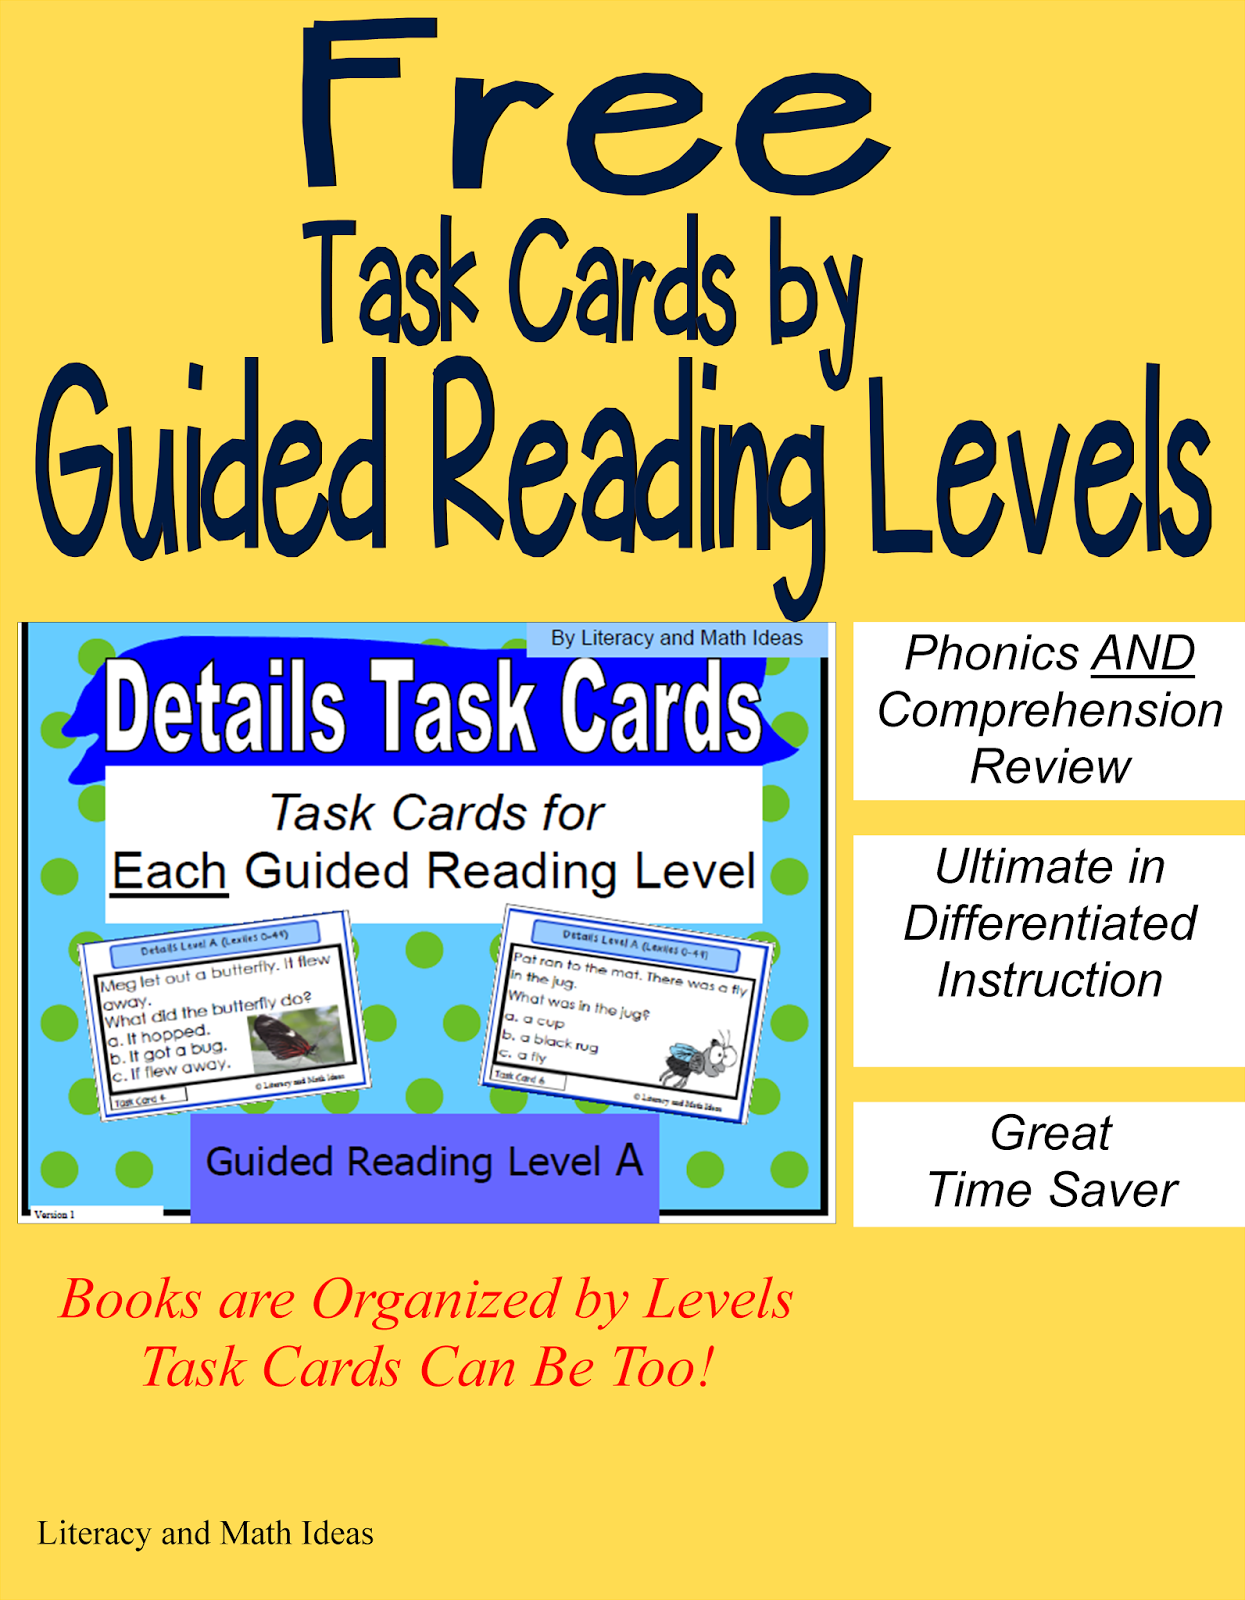 Literacy Amp Math Ideas Free Task Cards Organized By Guided Reading Levels Lexile Levels